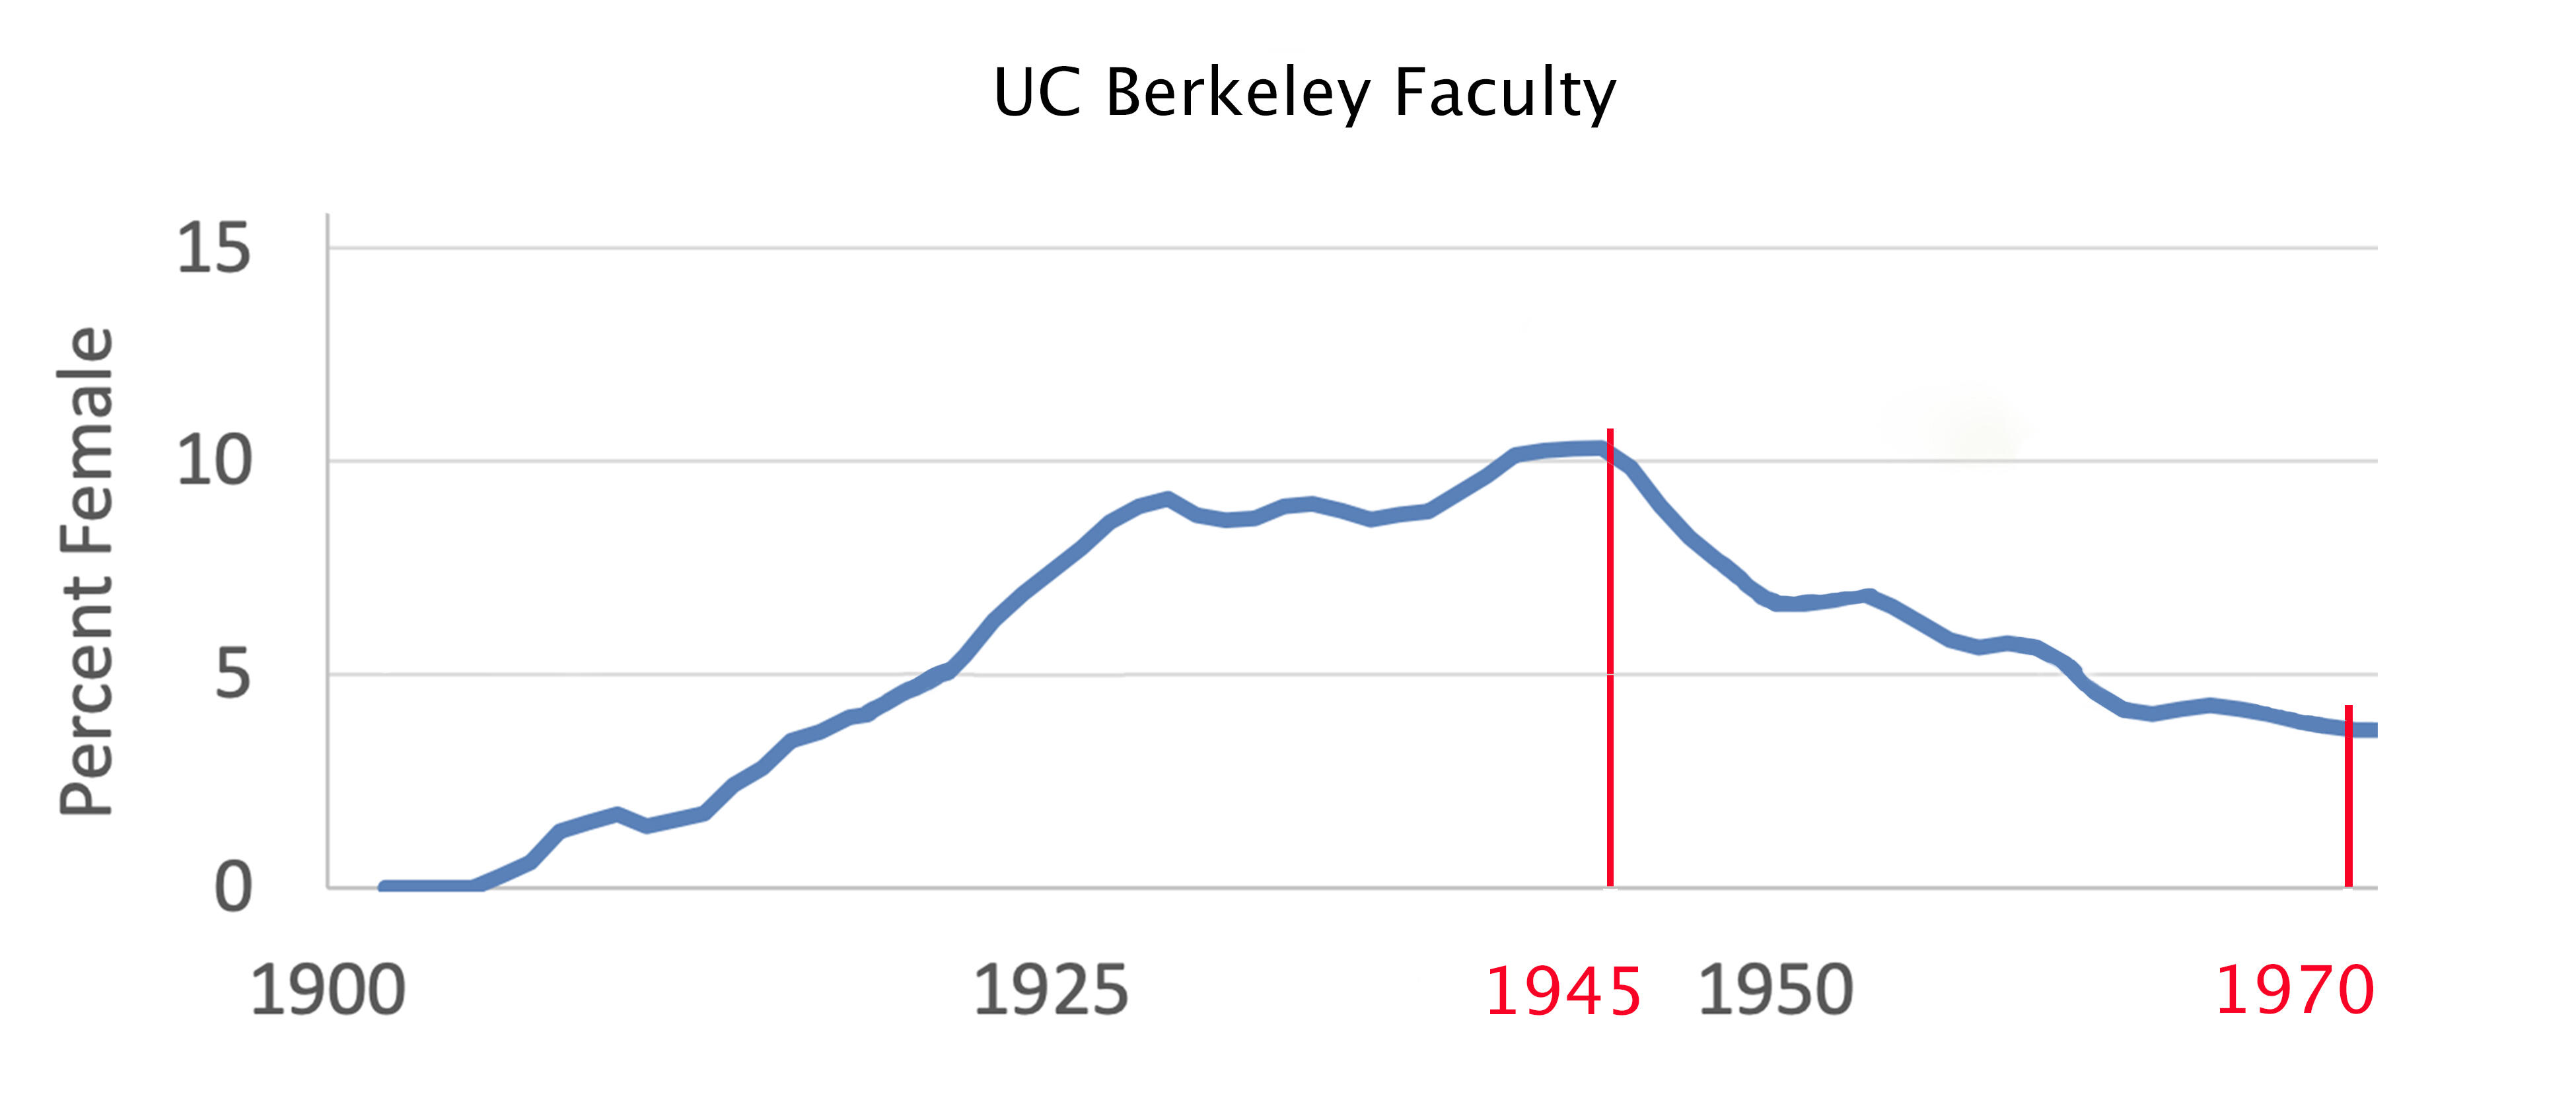 graph of UCB female faculty from 1900 to 1970, with time on x axis and percentage of female faculty on y axis